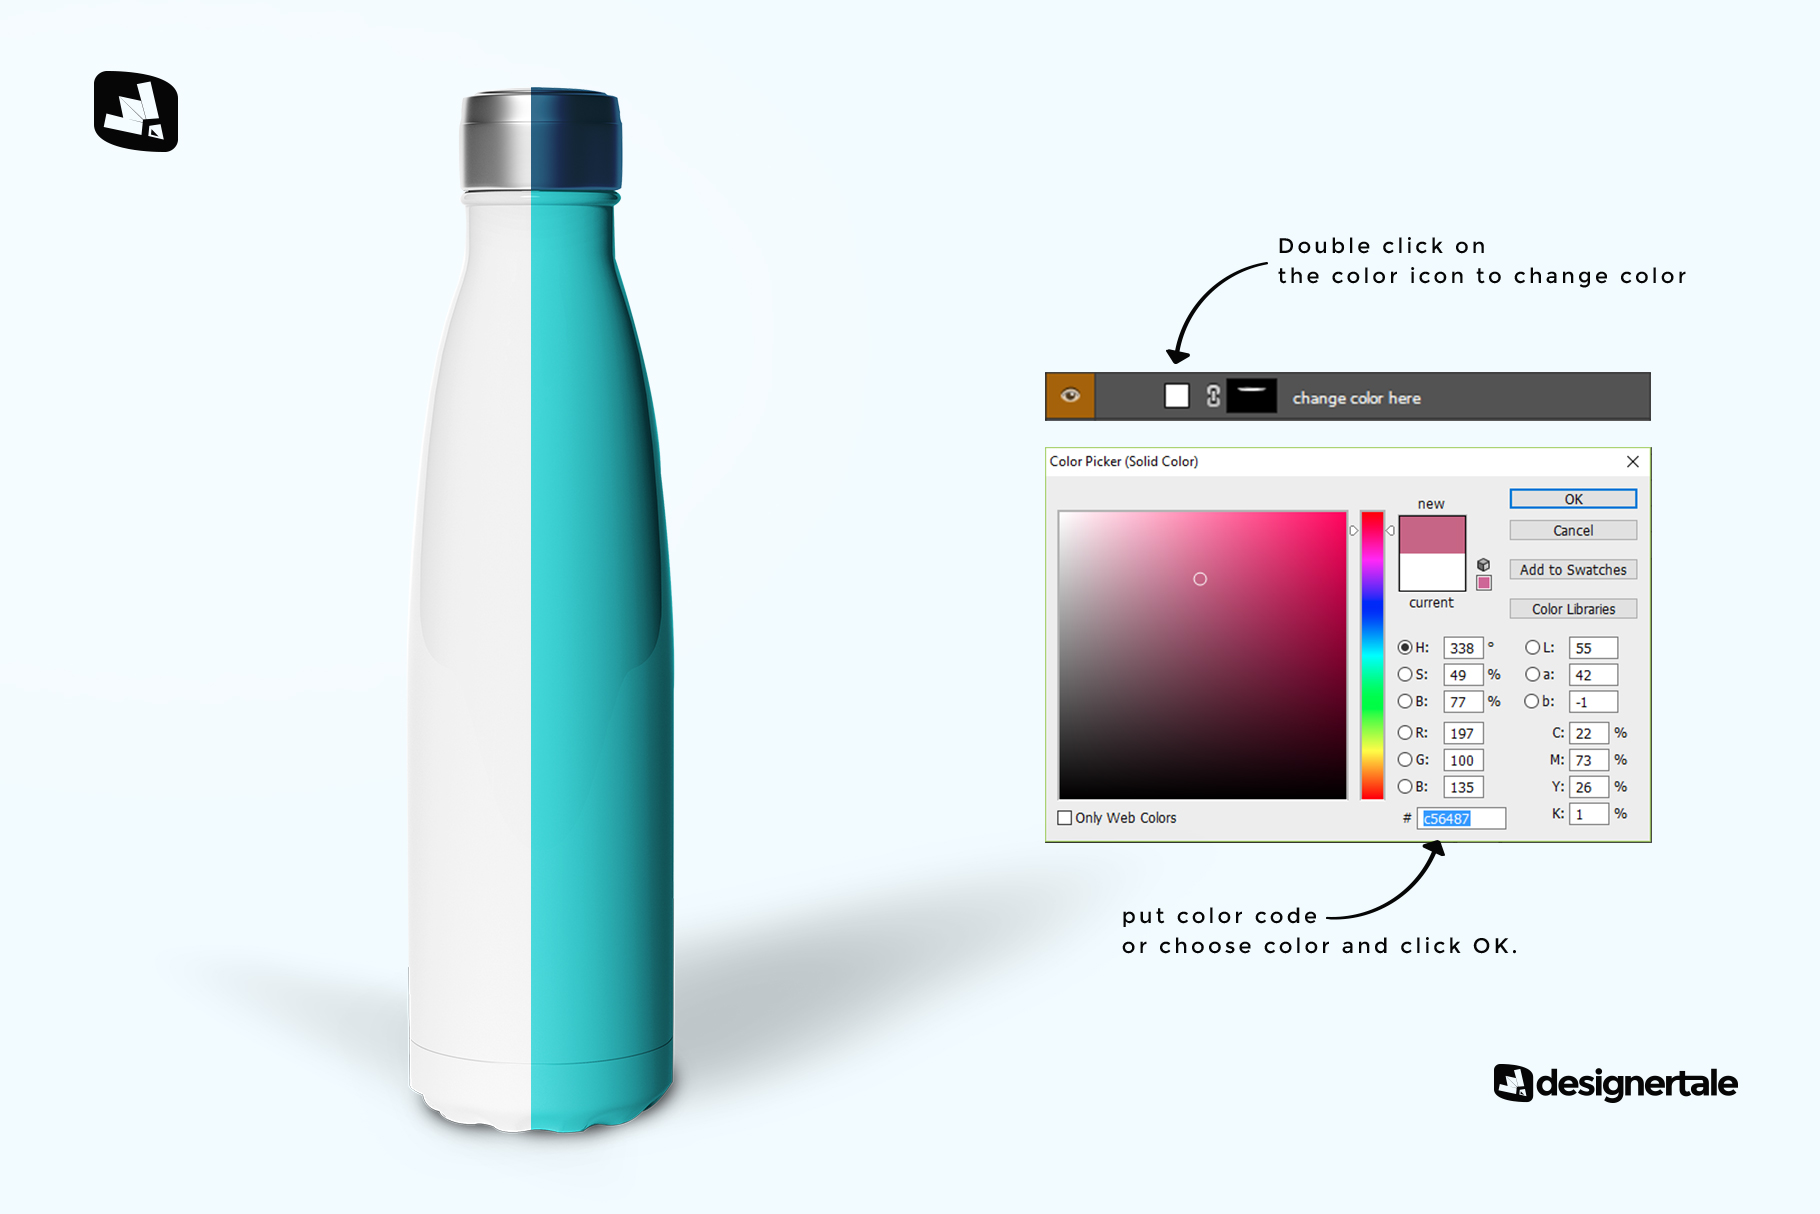 how to change color of the steel thermos bottle mockup